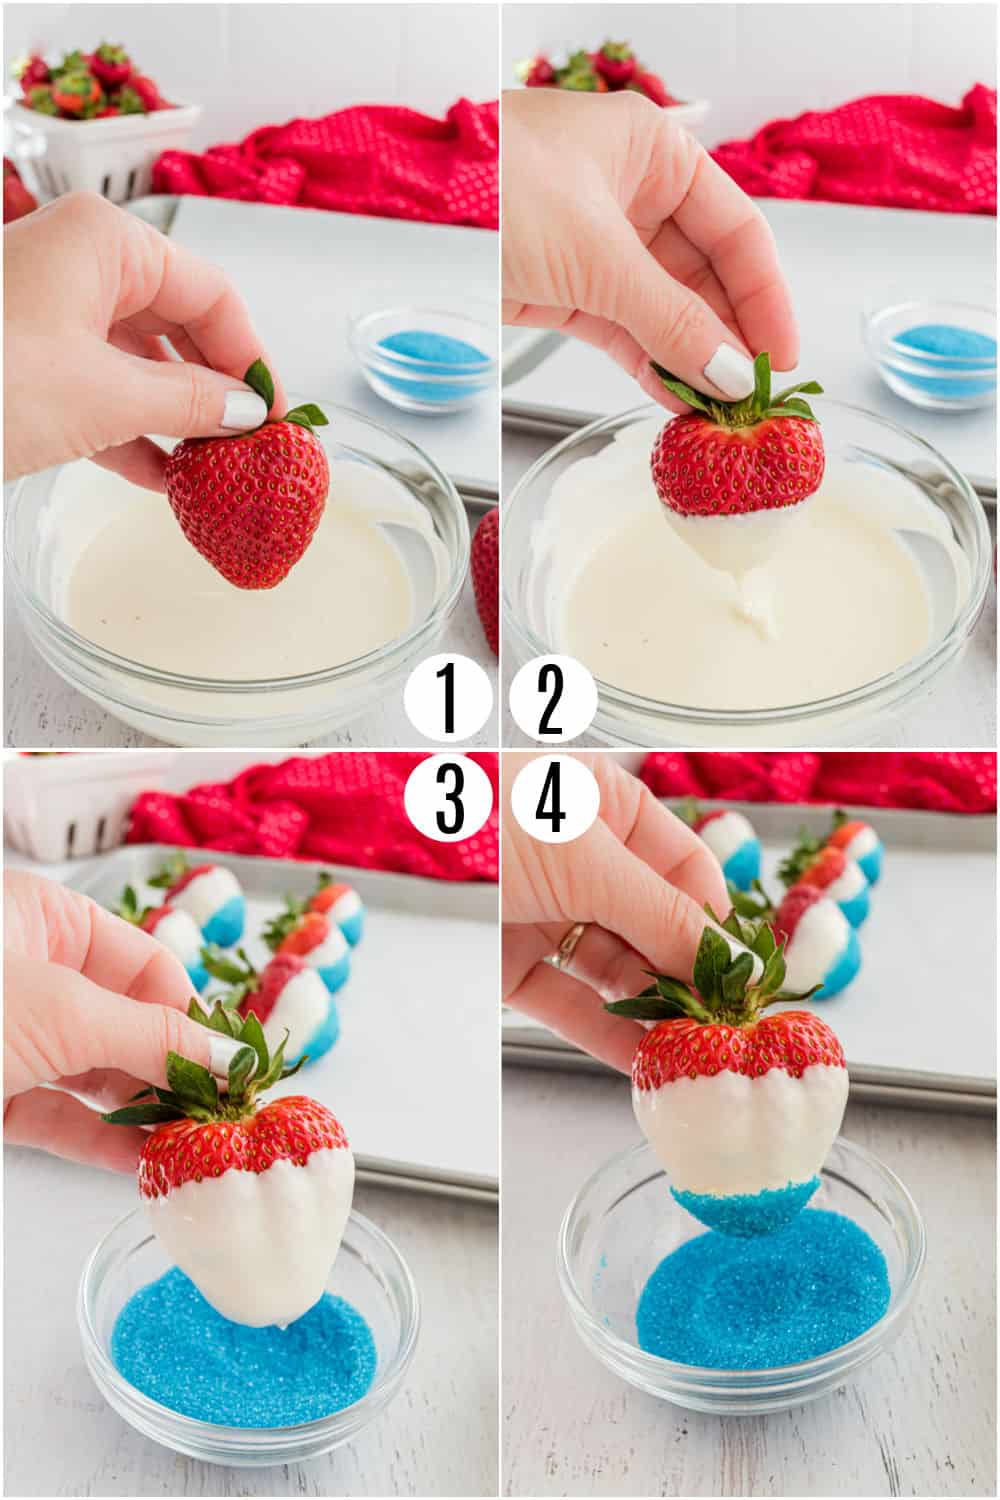 Step by step photos showing how to dip strawberries in white chocolate.